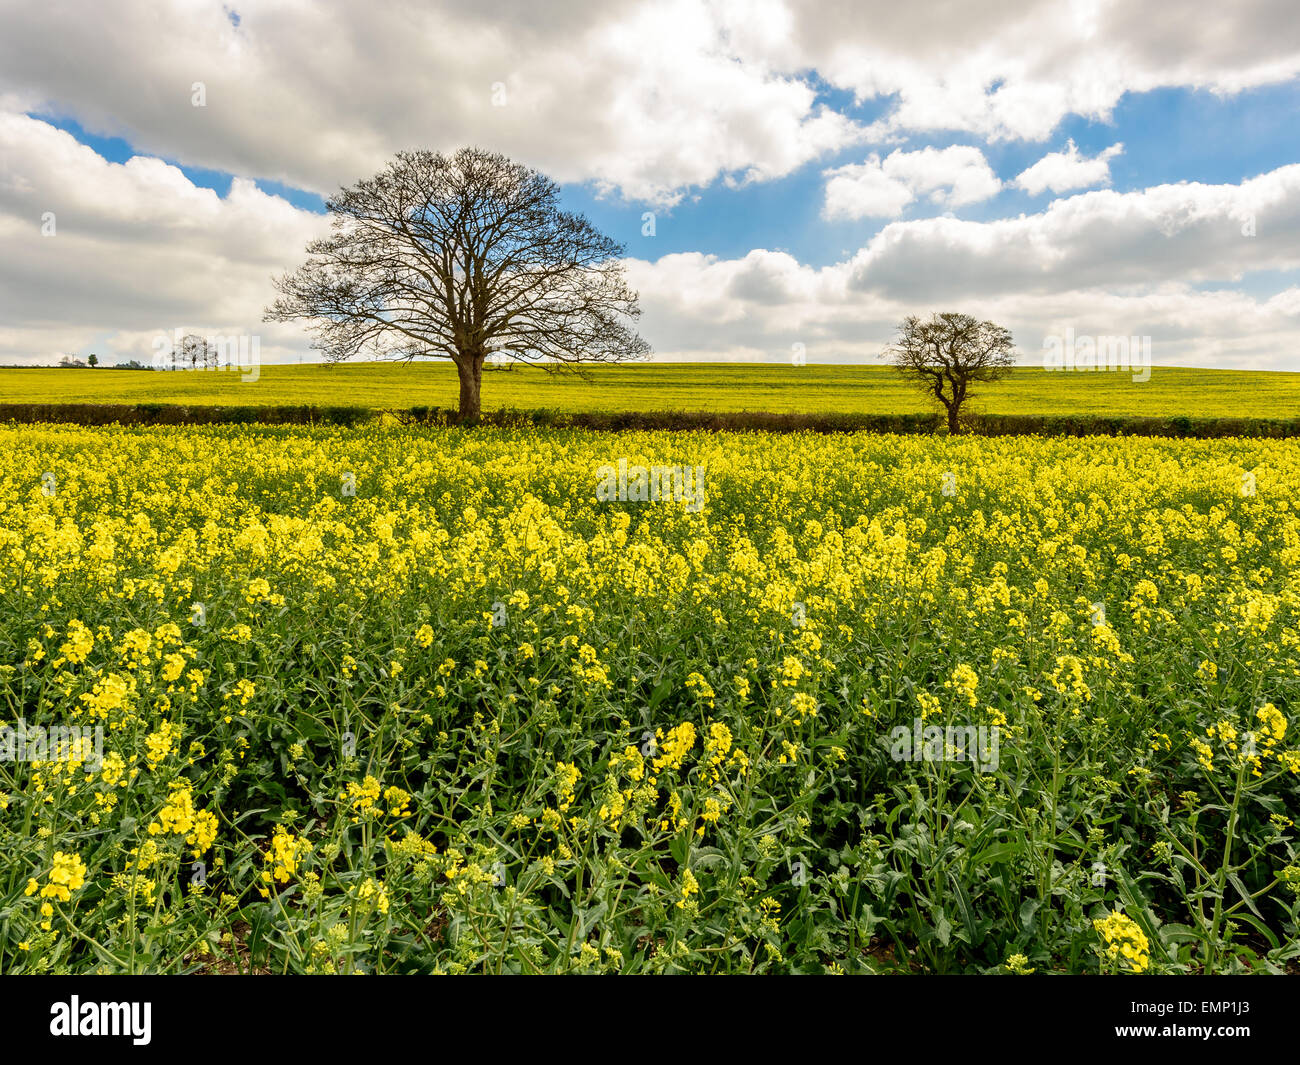 A wonderful view of the rapeseed fields of the Chiltern Hills in early spring whilst in blossom. - Stock Image